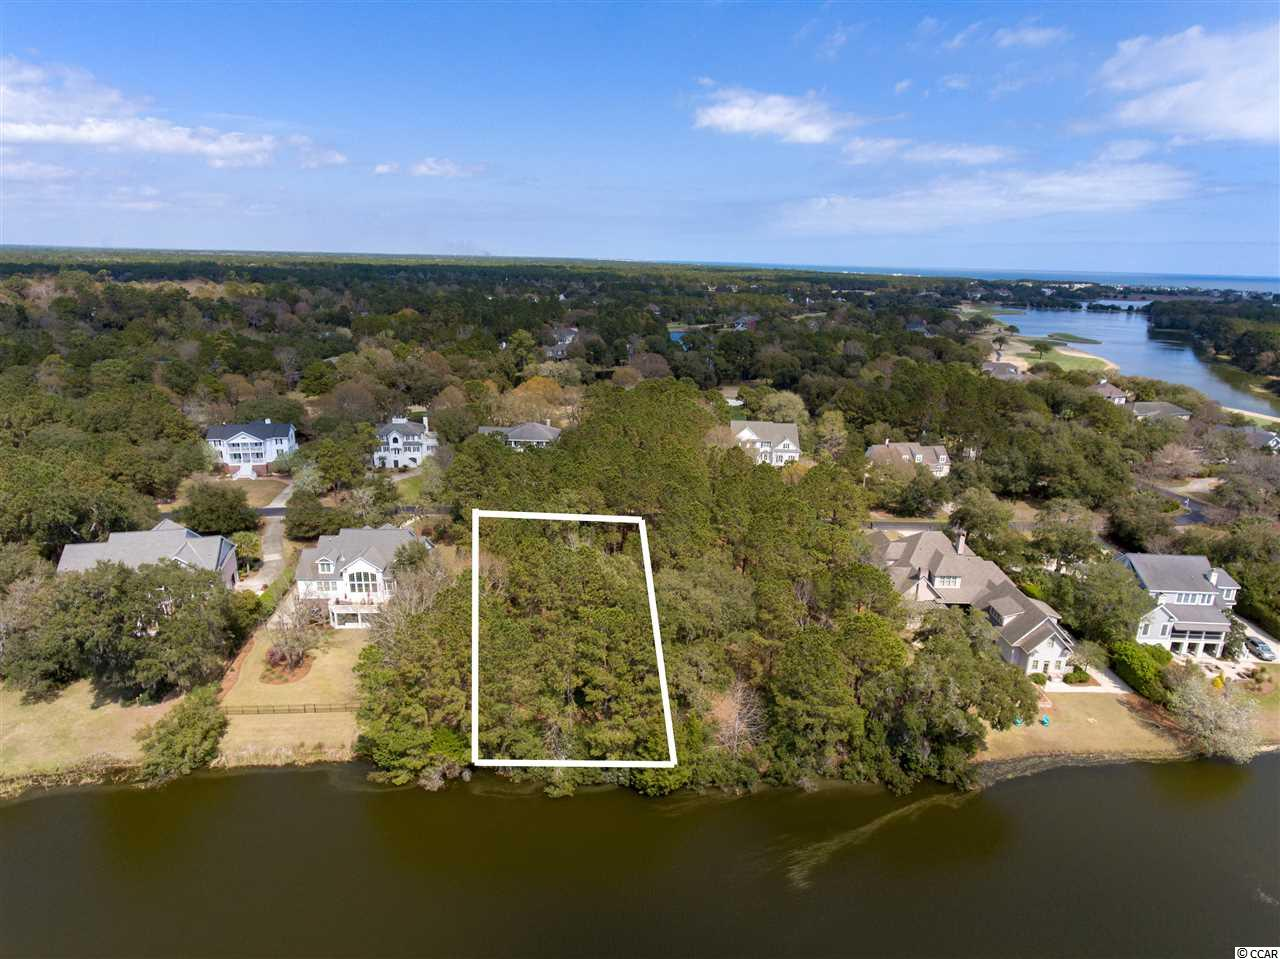 This half-acre+ lot with wonderful 4.5 acre pond frontage is conveniently located in DeBordieu's golf course community with easy access to the Clubhouse, Oceanfront Beach Club, Fitness & Tennis Center and Boat Landing. DeBordieu Colony is an Private oceanfront community located just south of Pawleys Island, South Carolina featuring private golf and tennis, saltwater creek access to the ocean, a manned security gate, and luxury homes and villas surrounded by thousands of acres of wildlife and nature preserves.